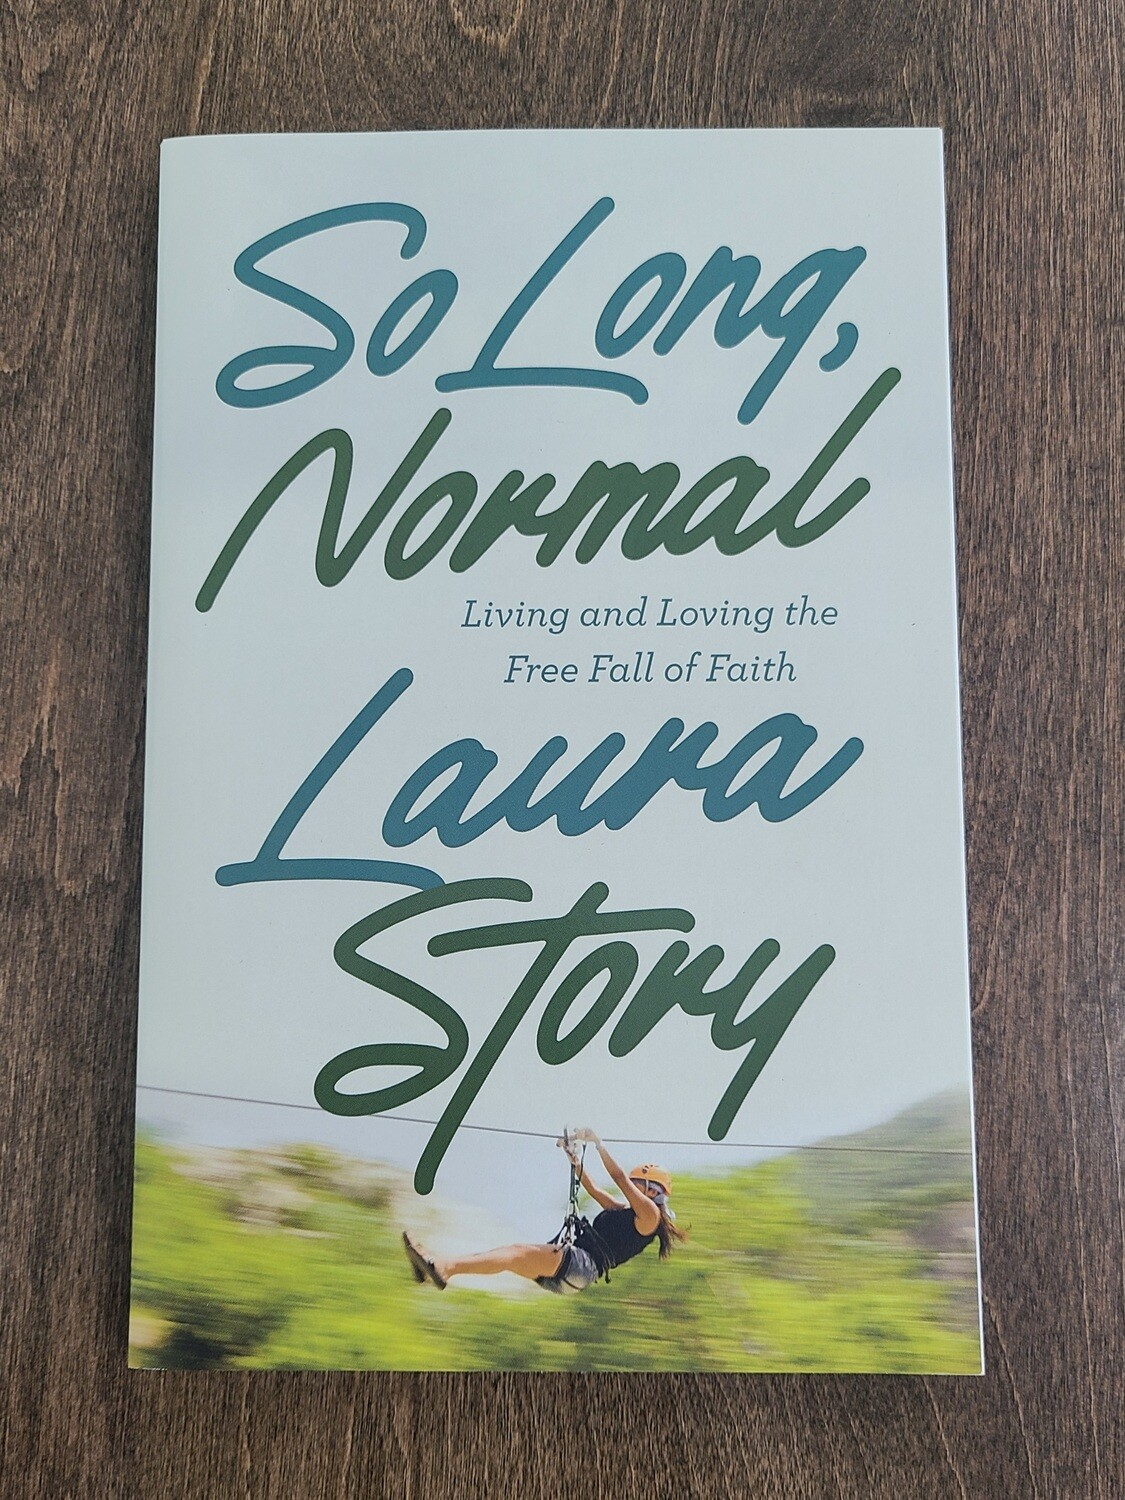 So Long, Normal: Living and Loving the Free Fall of Faith by Laura Story